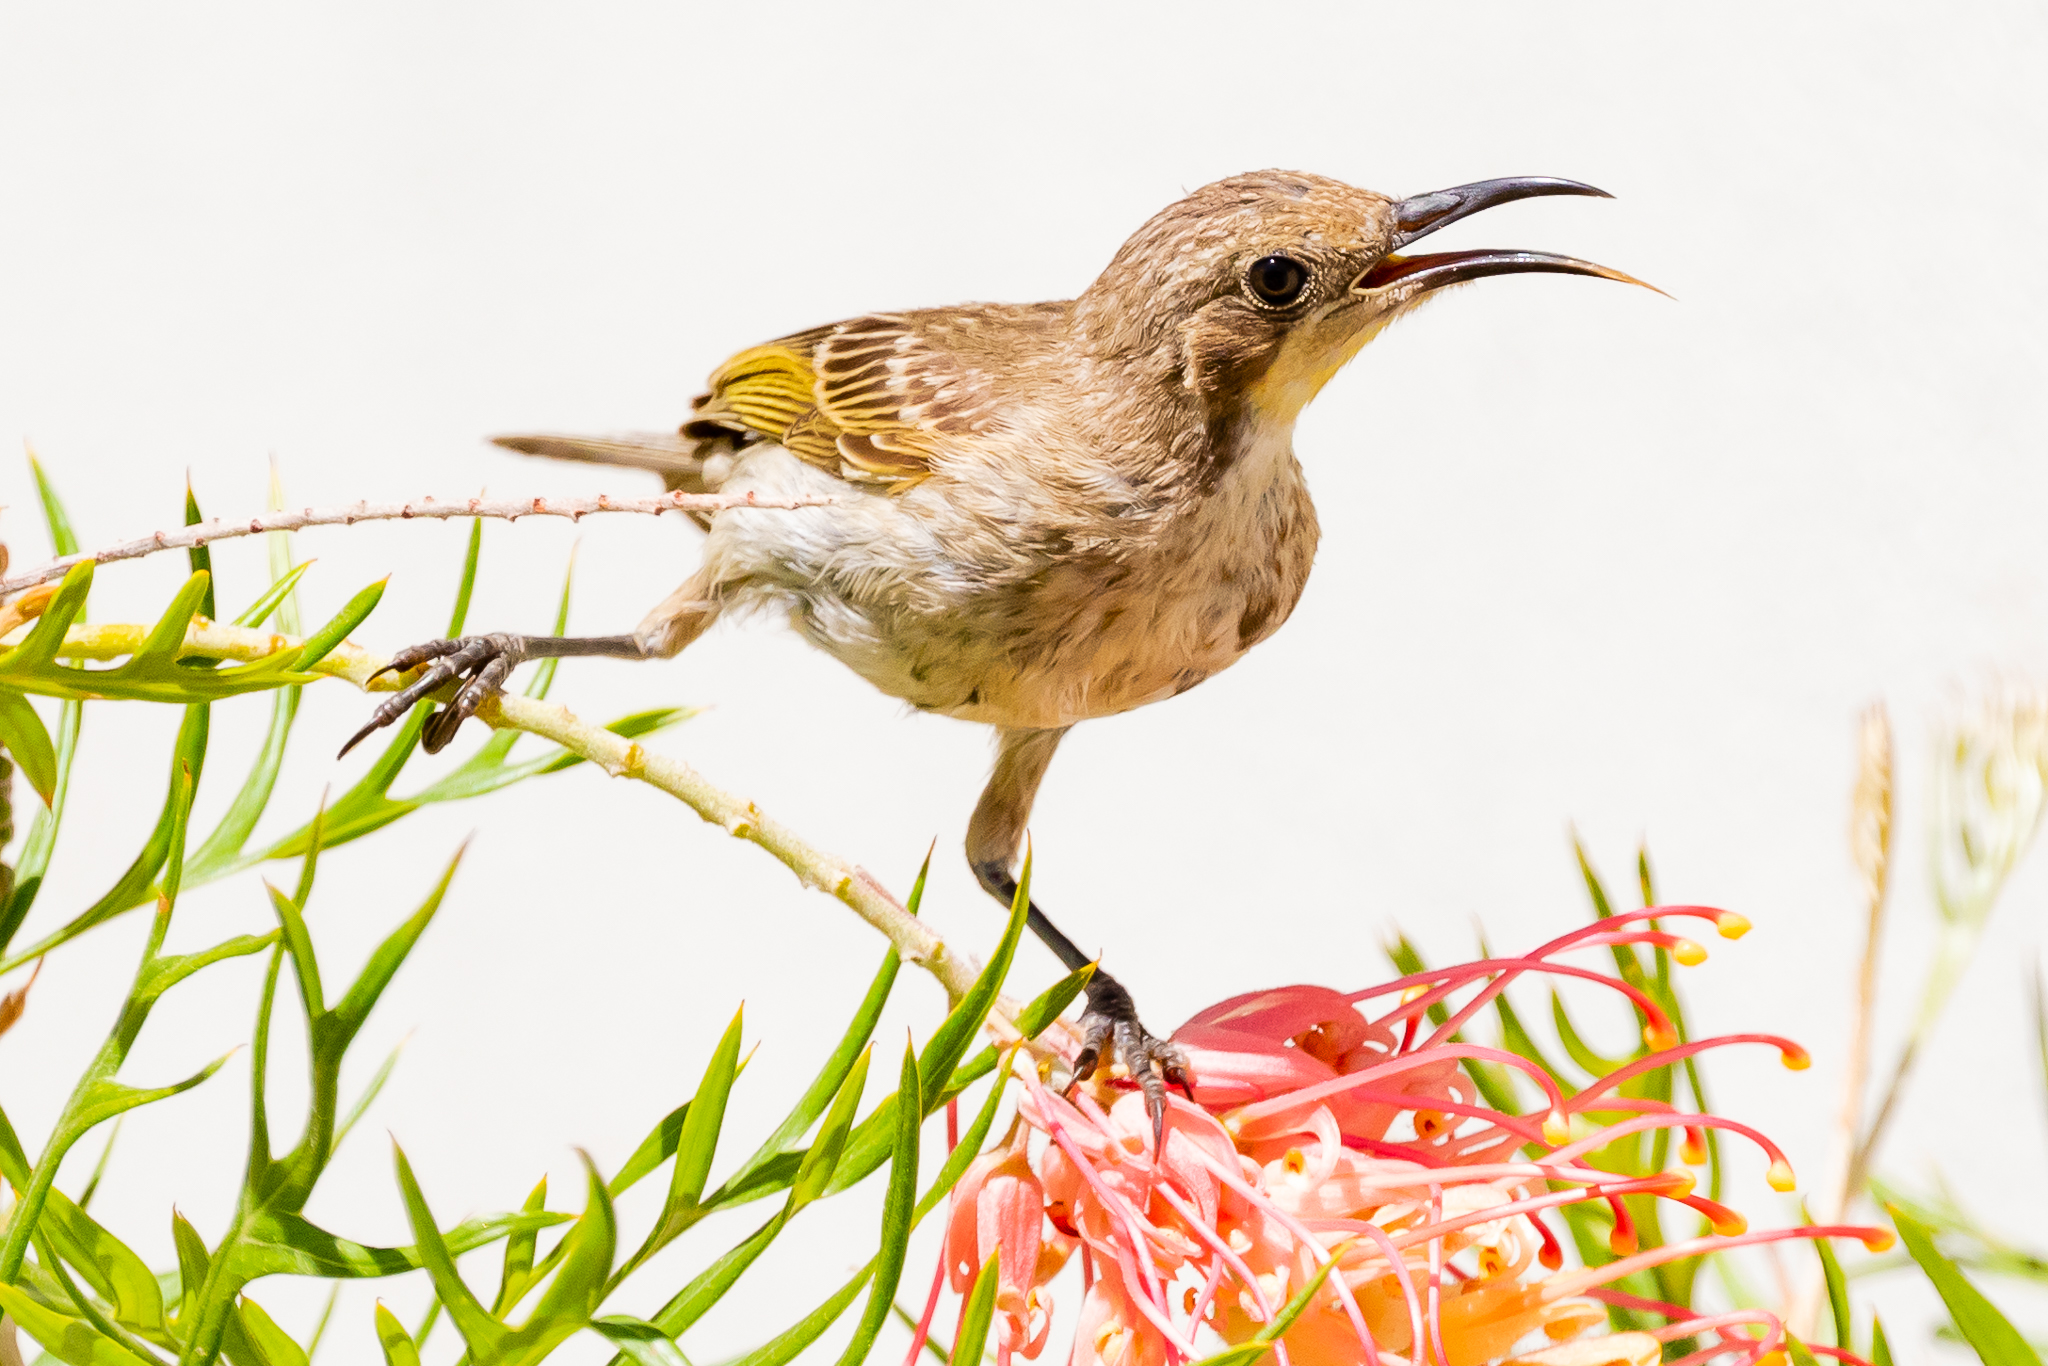 This young Tawny-crowned Honeyeater (17 cm) shows the immature plumage, lacking the adult's dark mask that extends down to the breast.